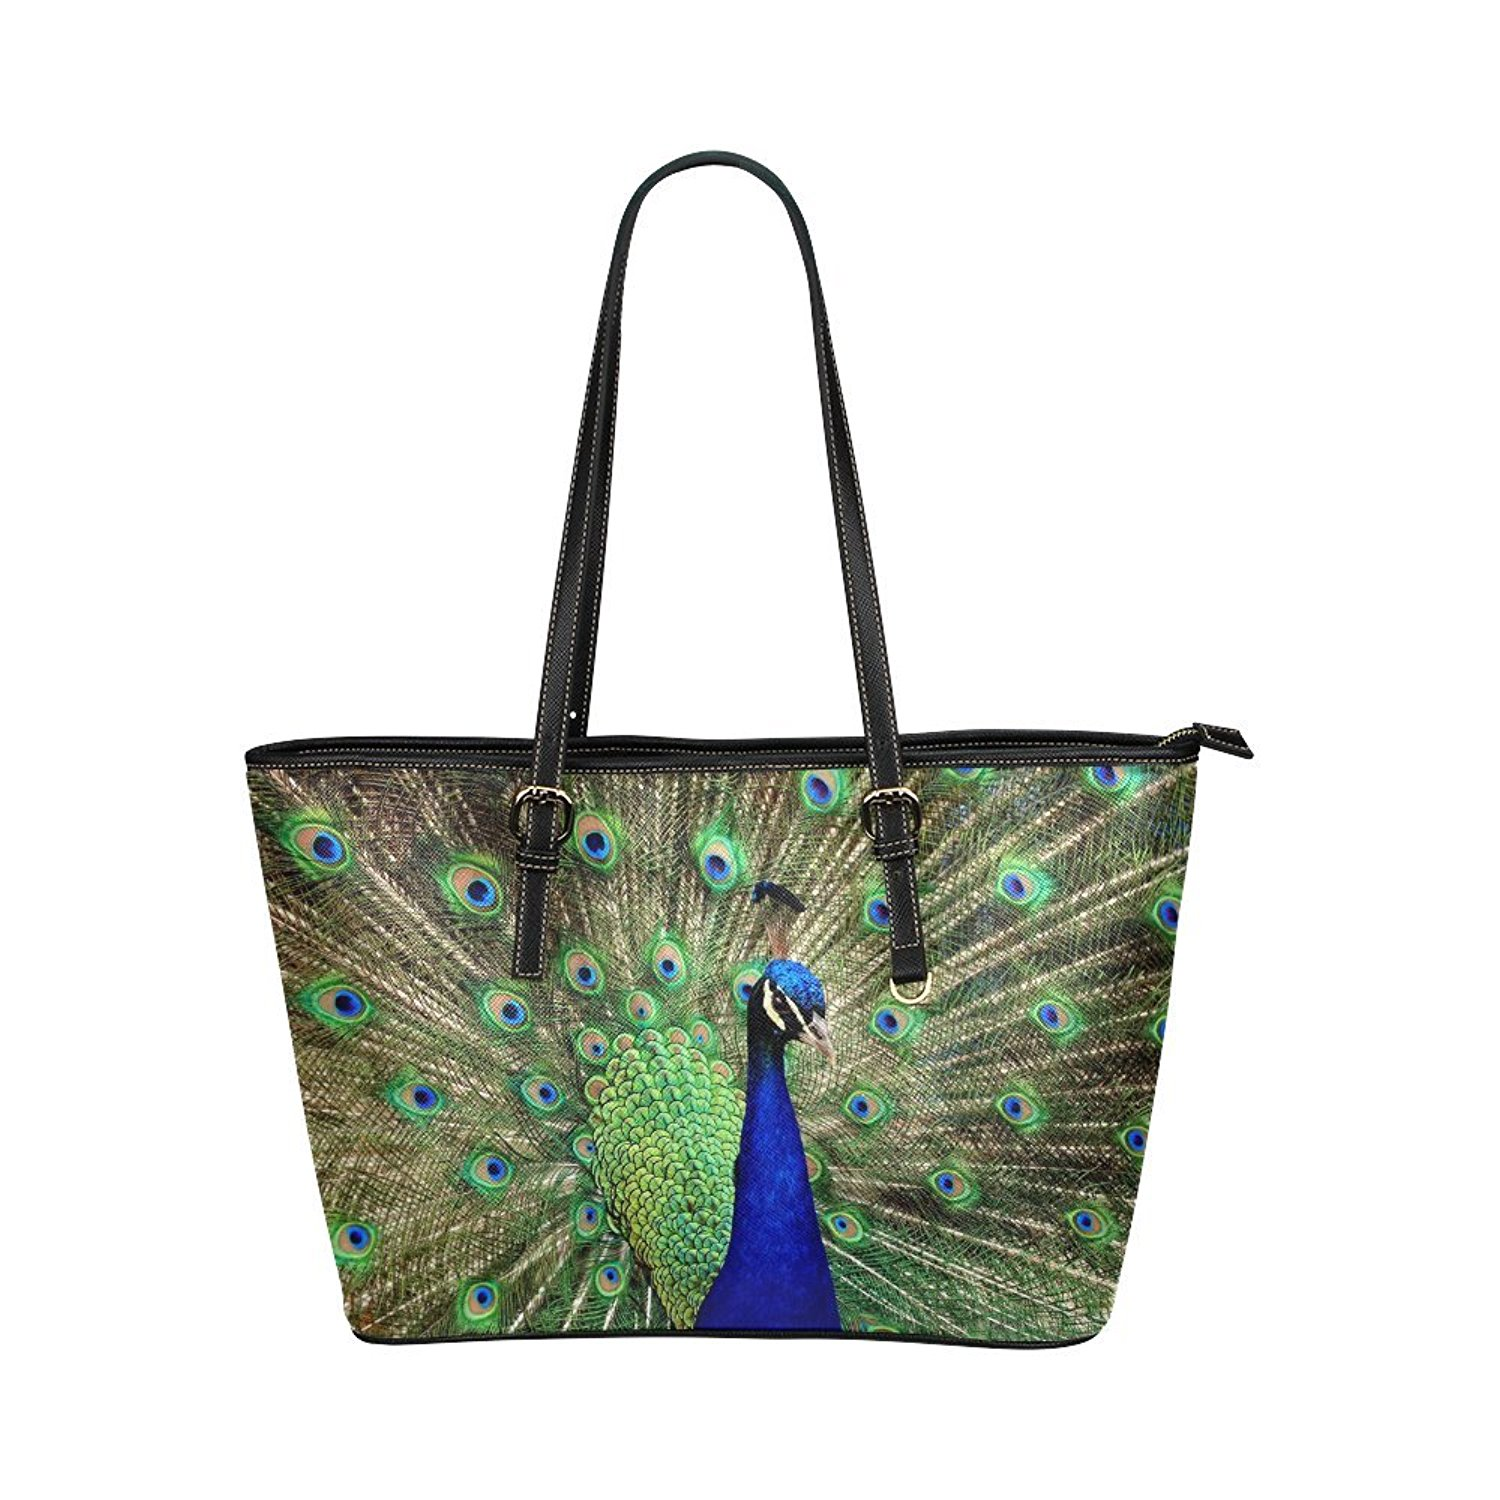 Green Peacock Feathers Large Travel Duffel Bag Waterproof Weekend Bag with Strap